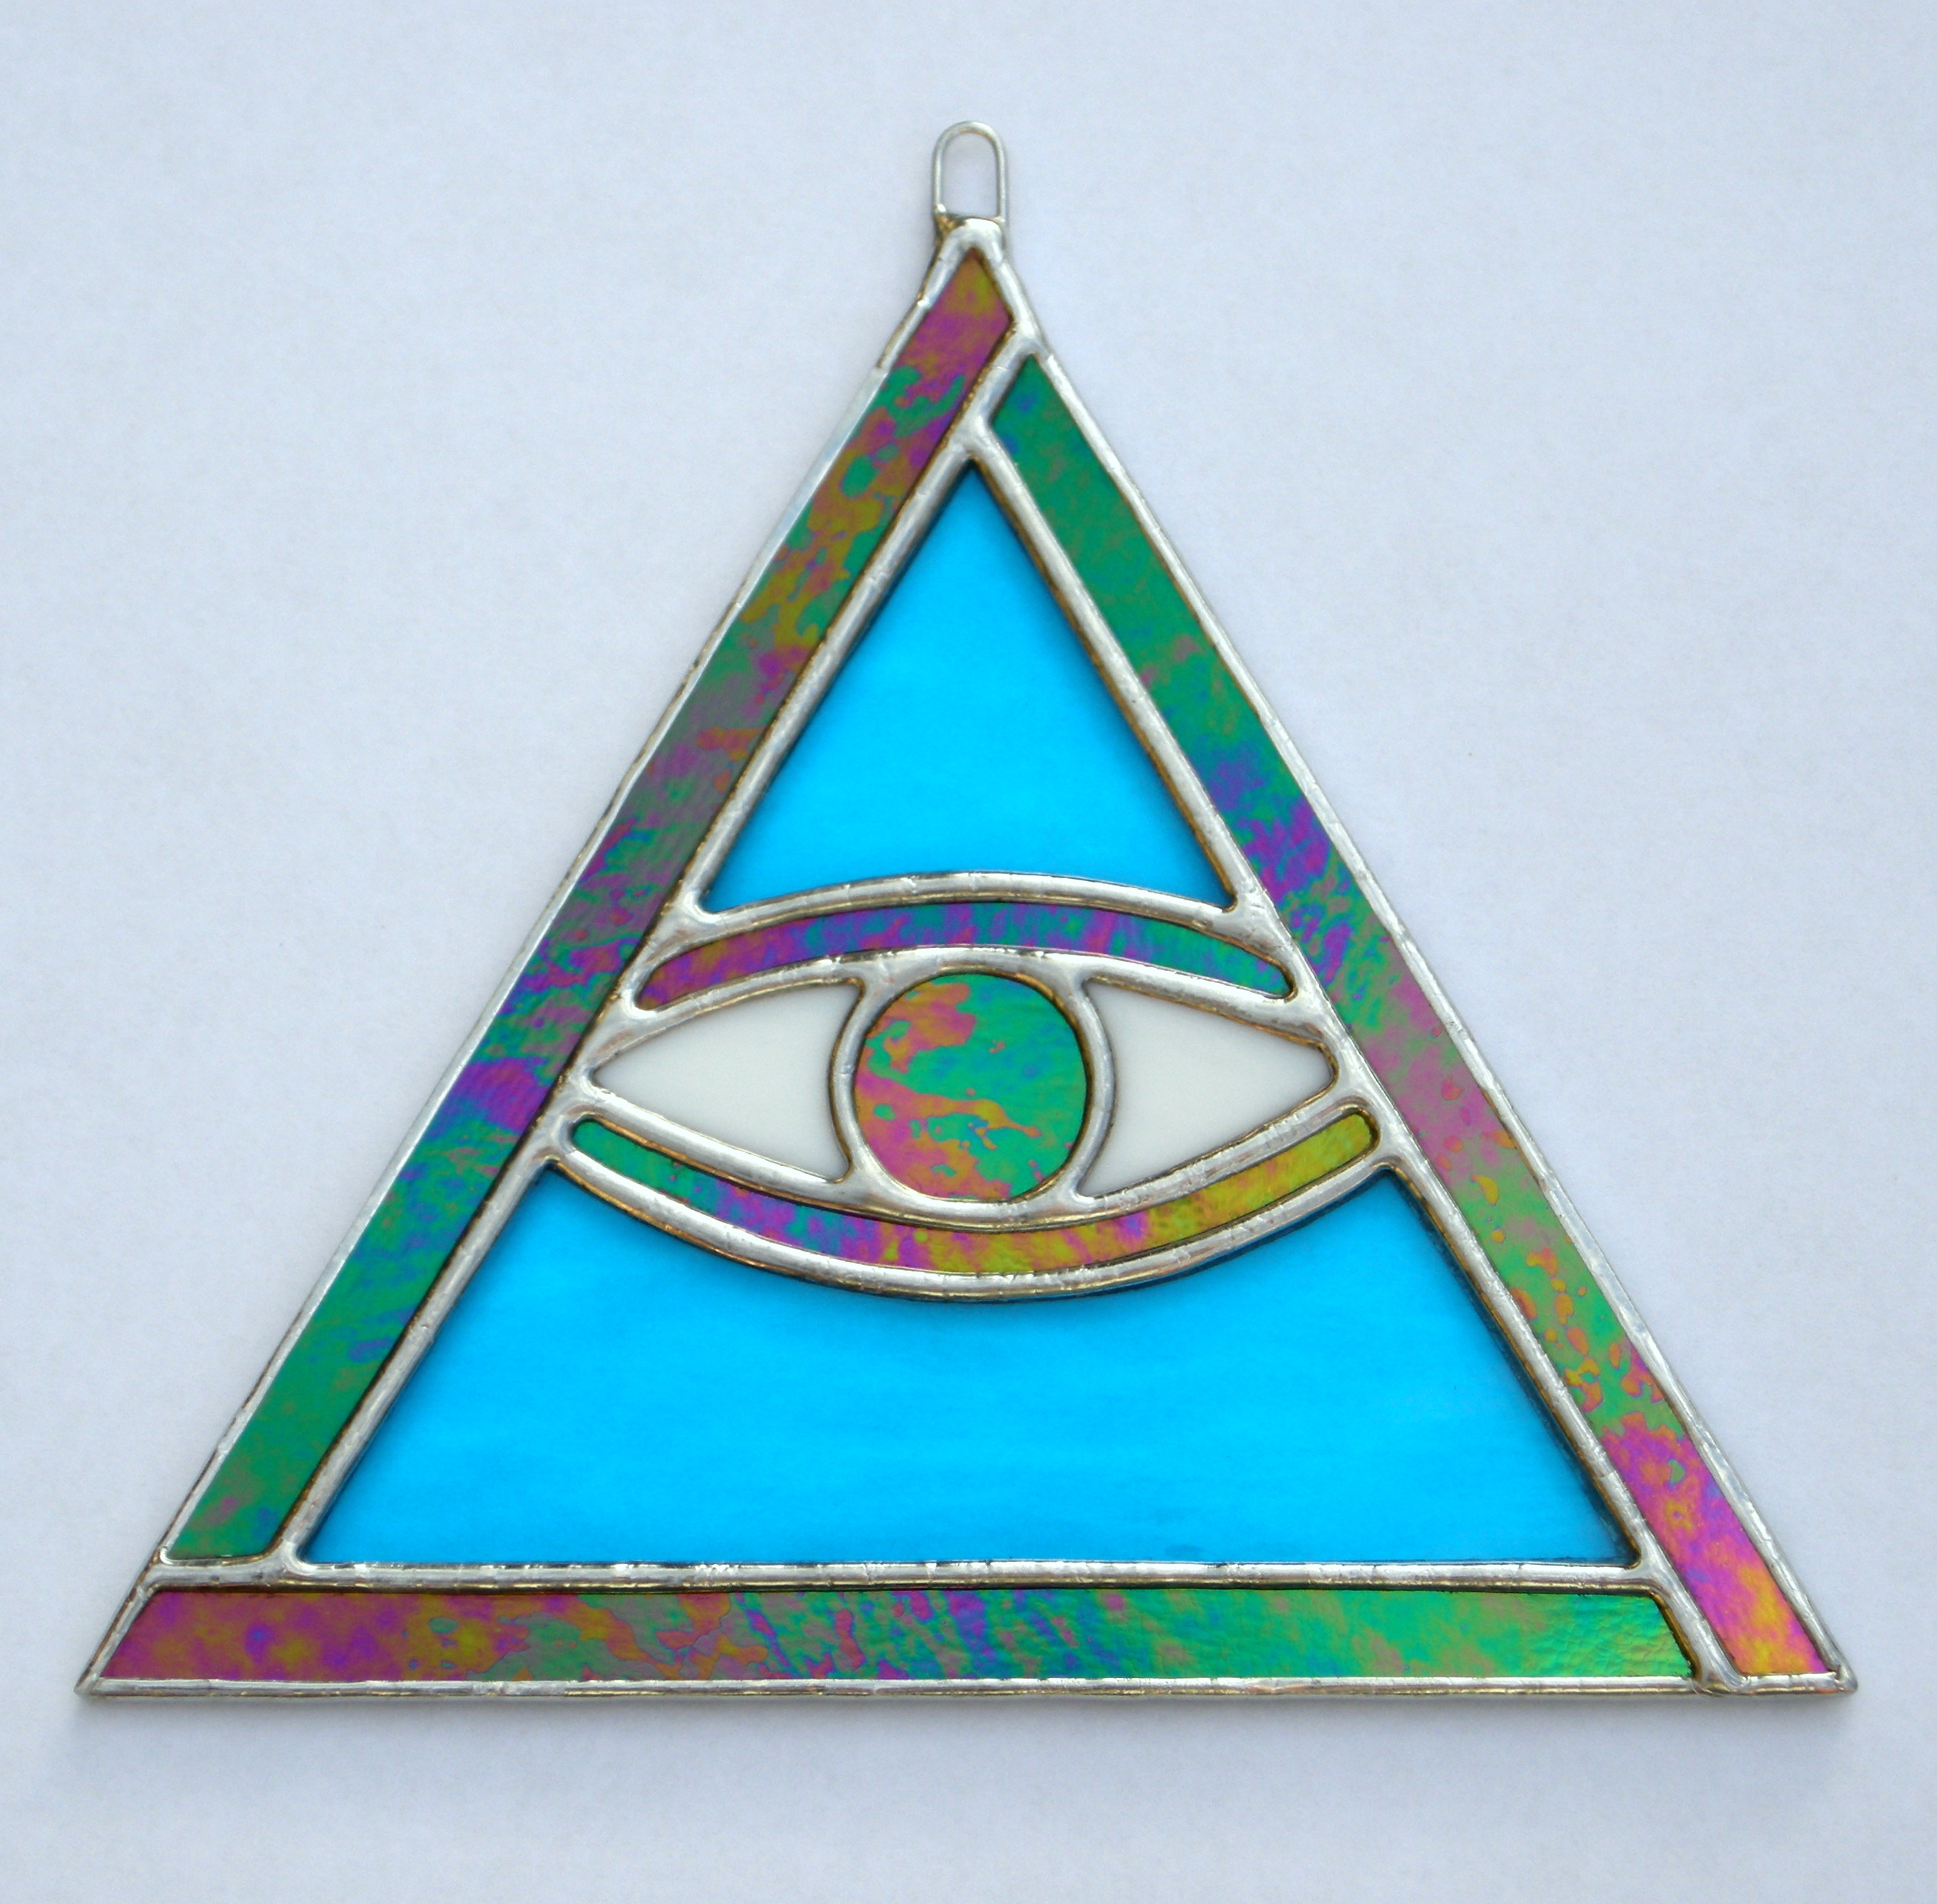 Stained Glass suncatcher - The All Seeing Eye